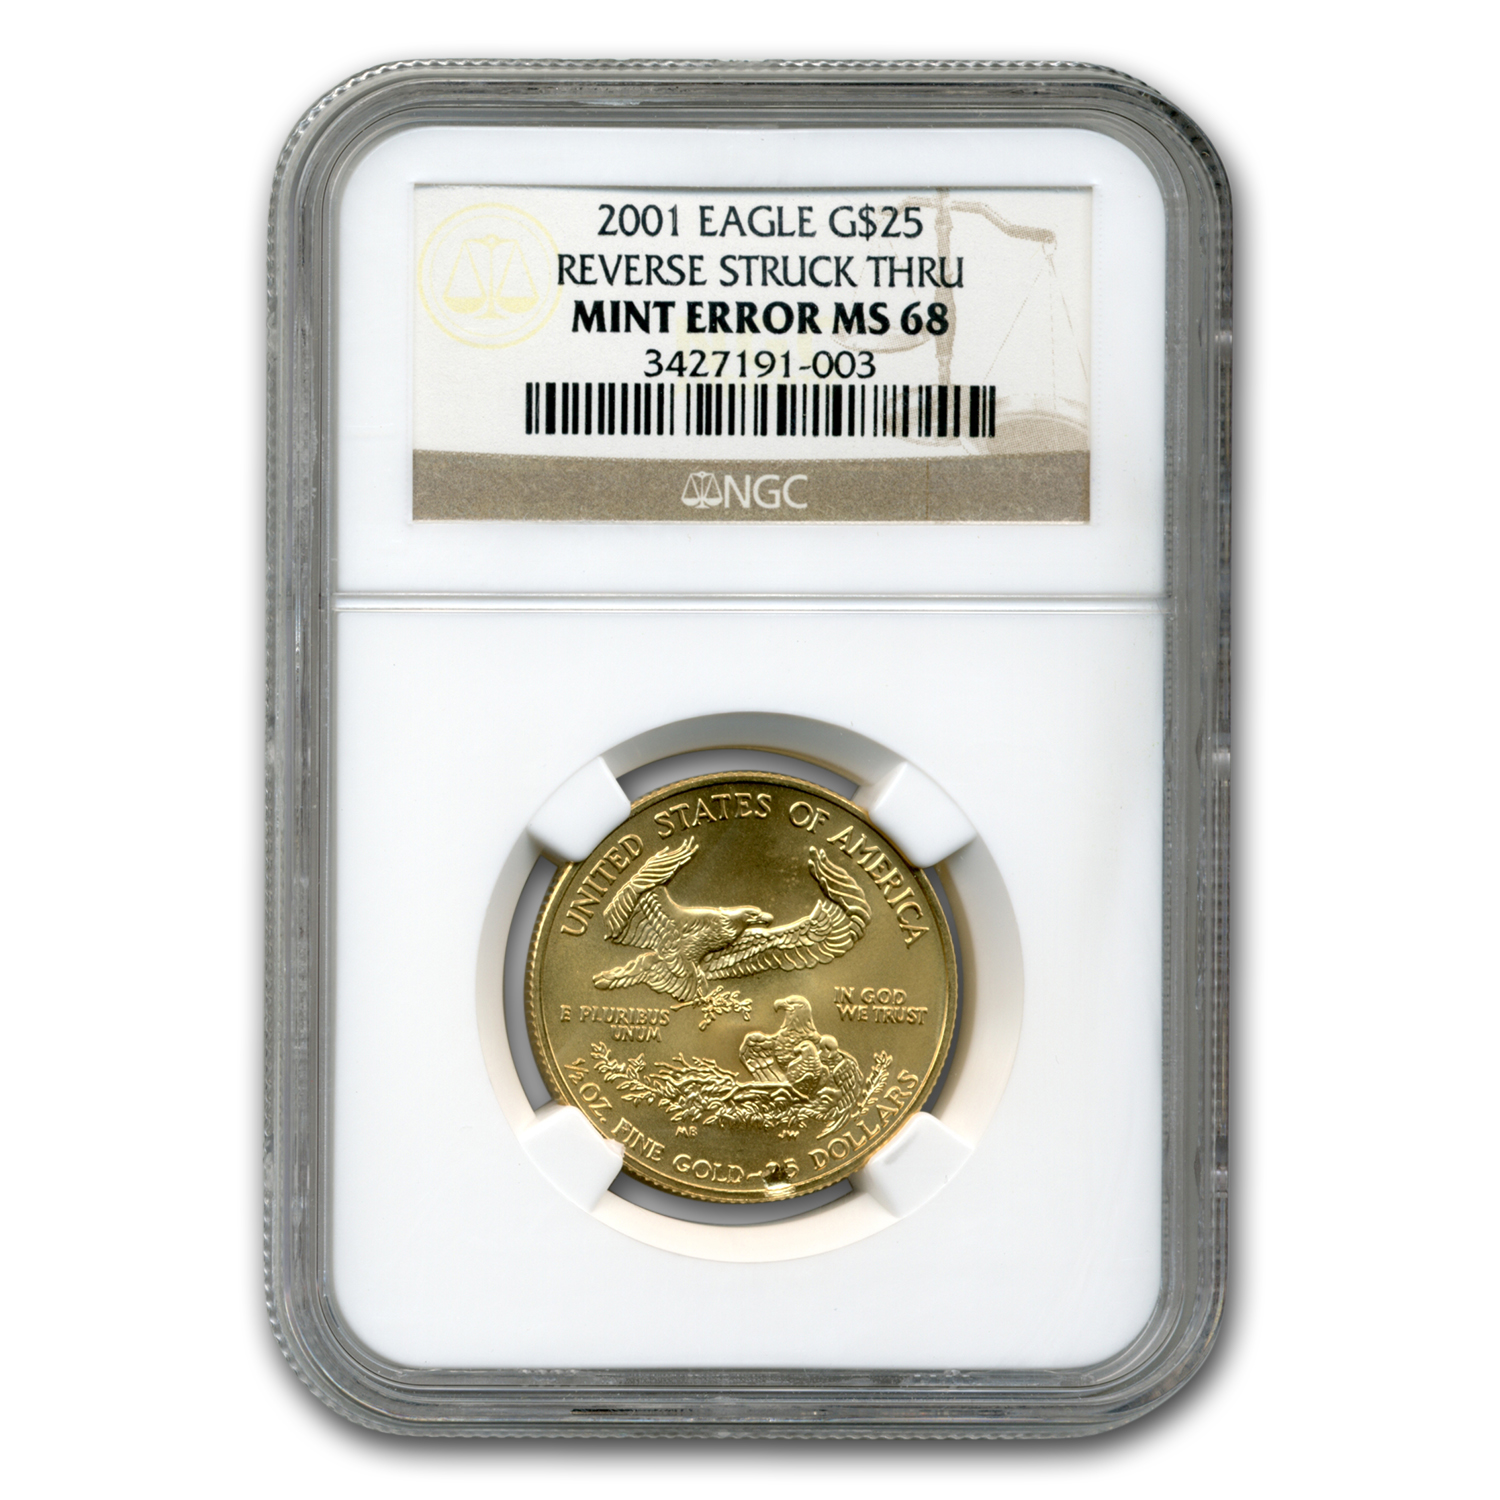 2001 1/2 oz Gold American Eagle MS-68 NGC (Obv Mint Error)